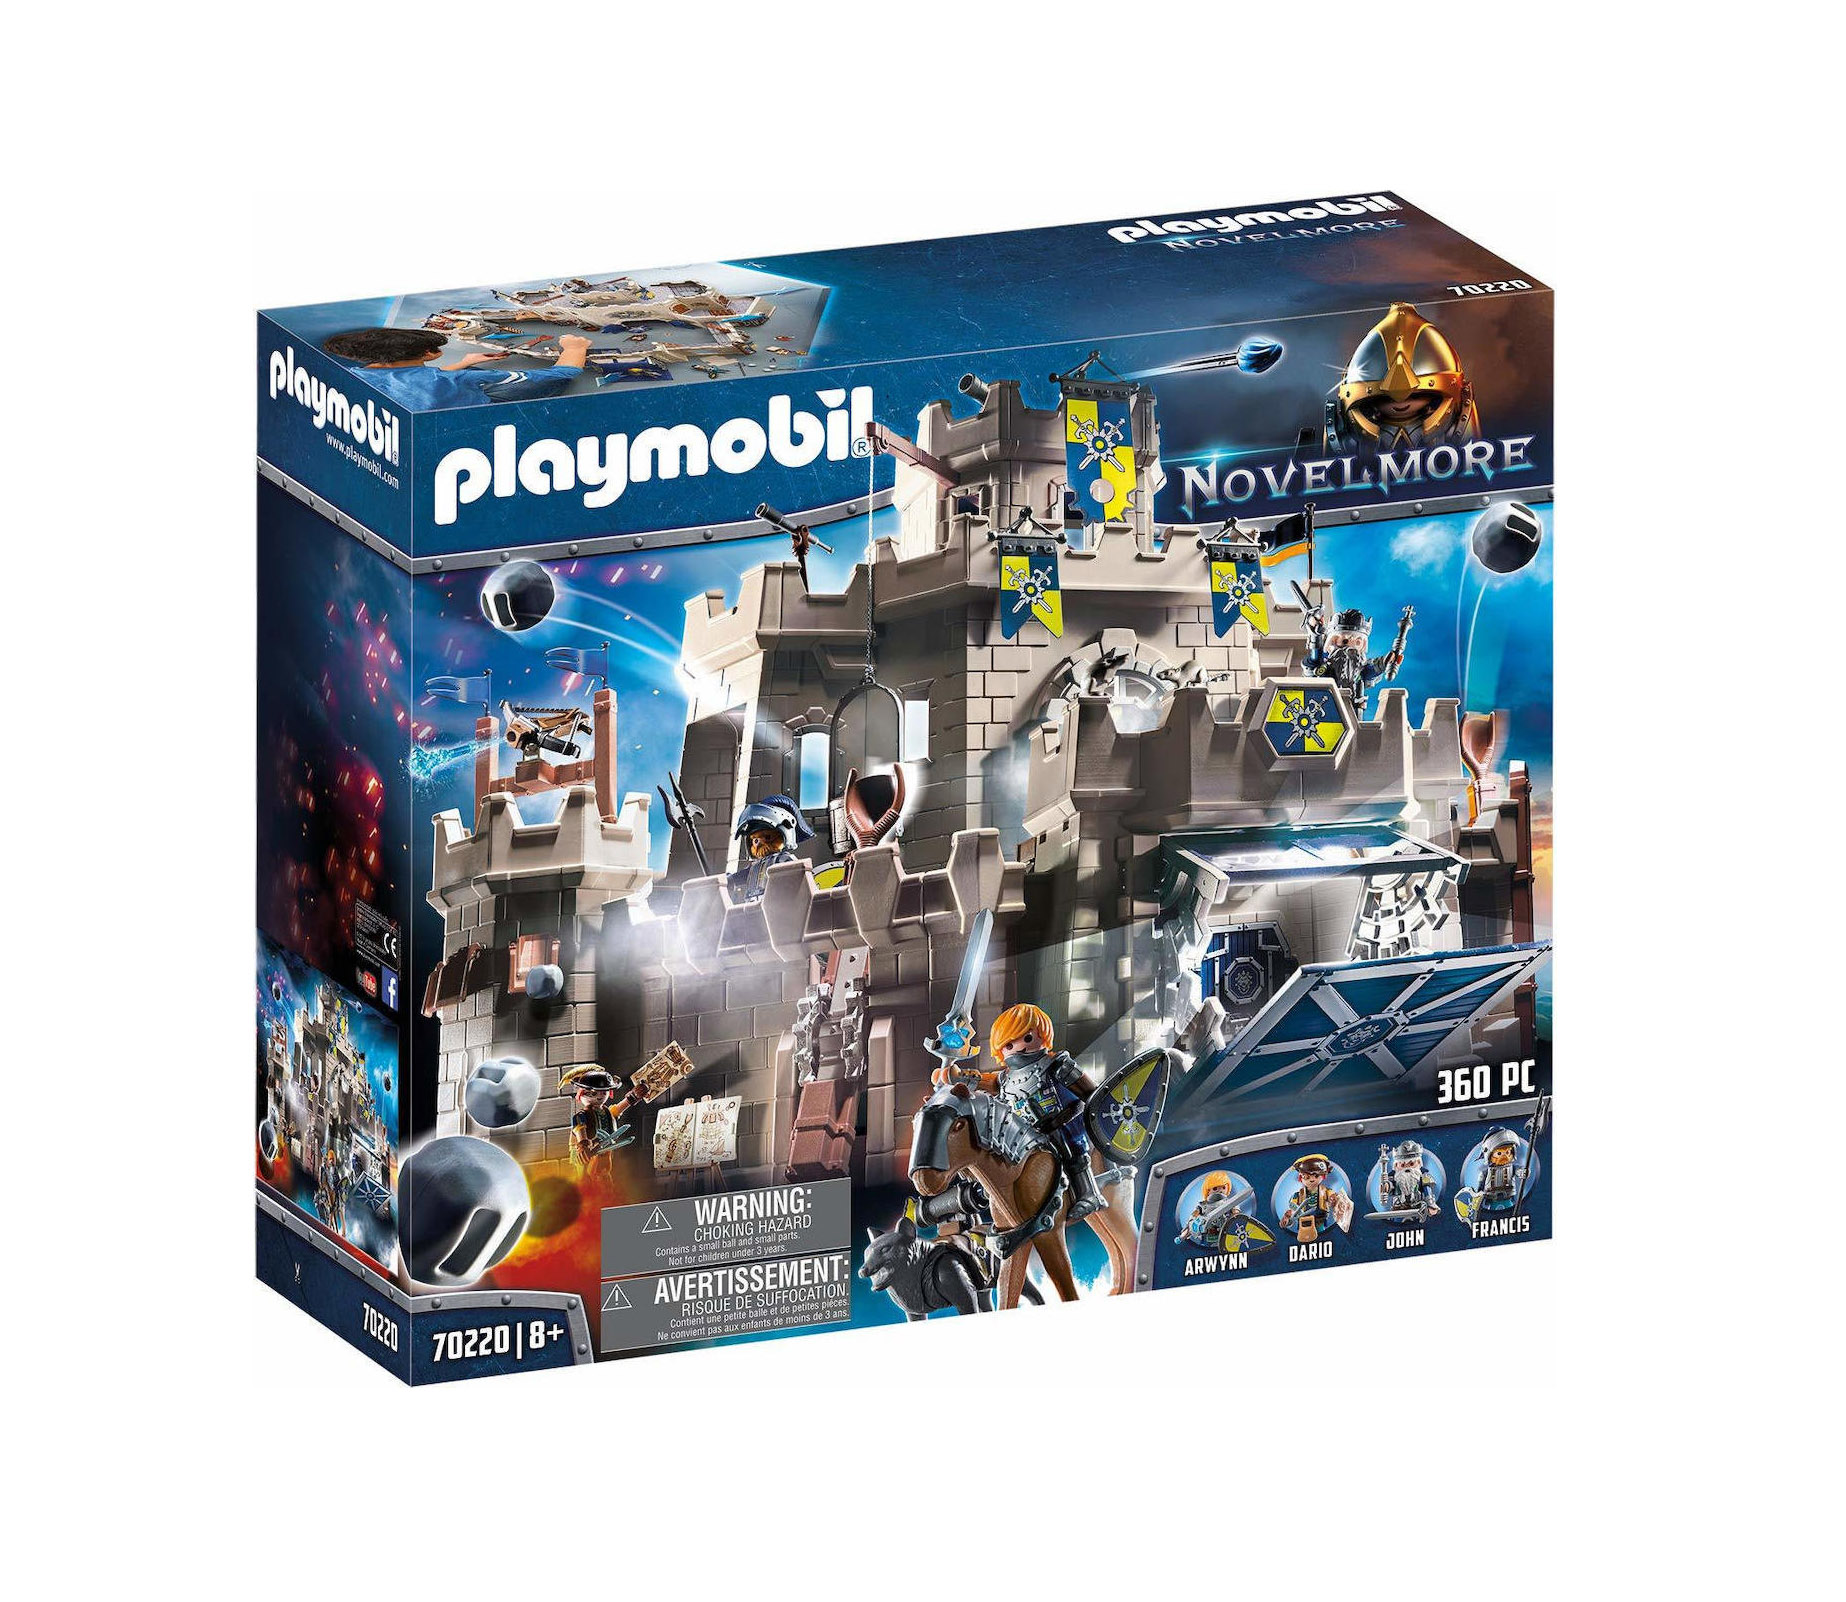 Playmobil Novel More: Big Castle of the Knights 70220